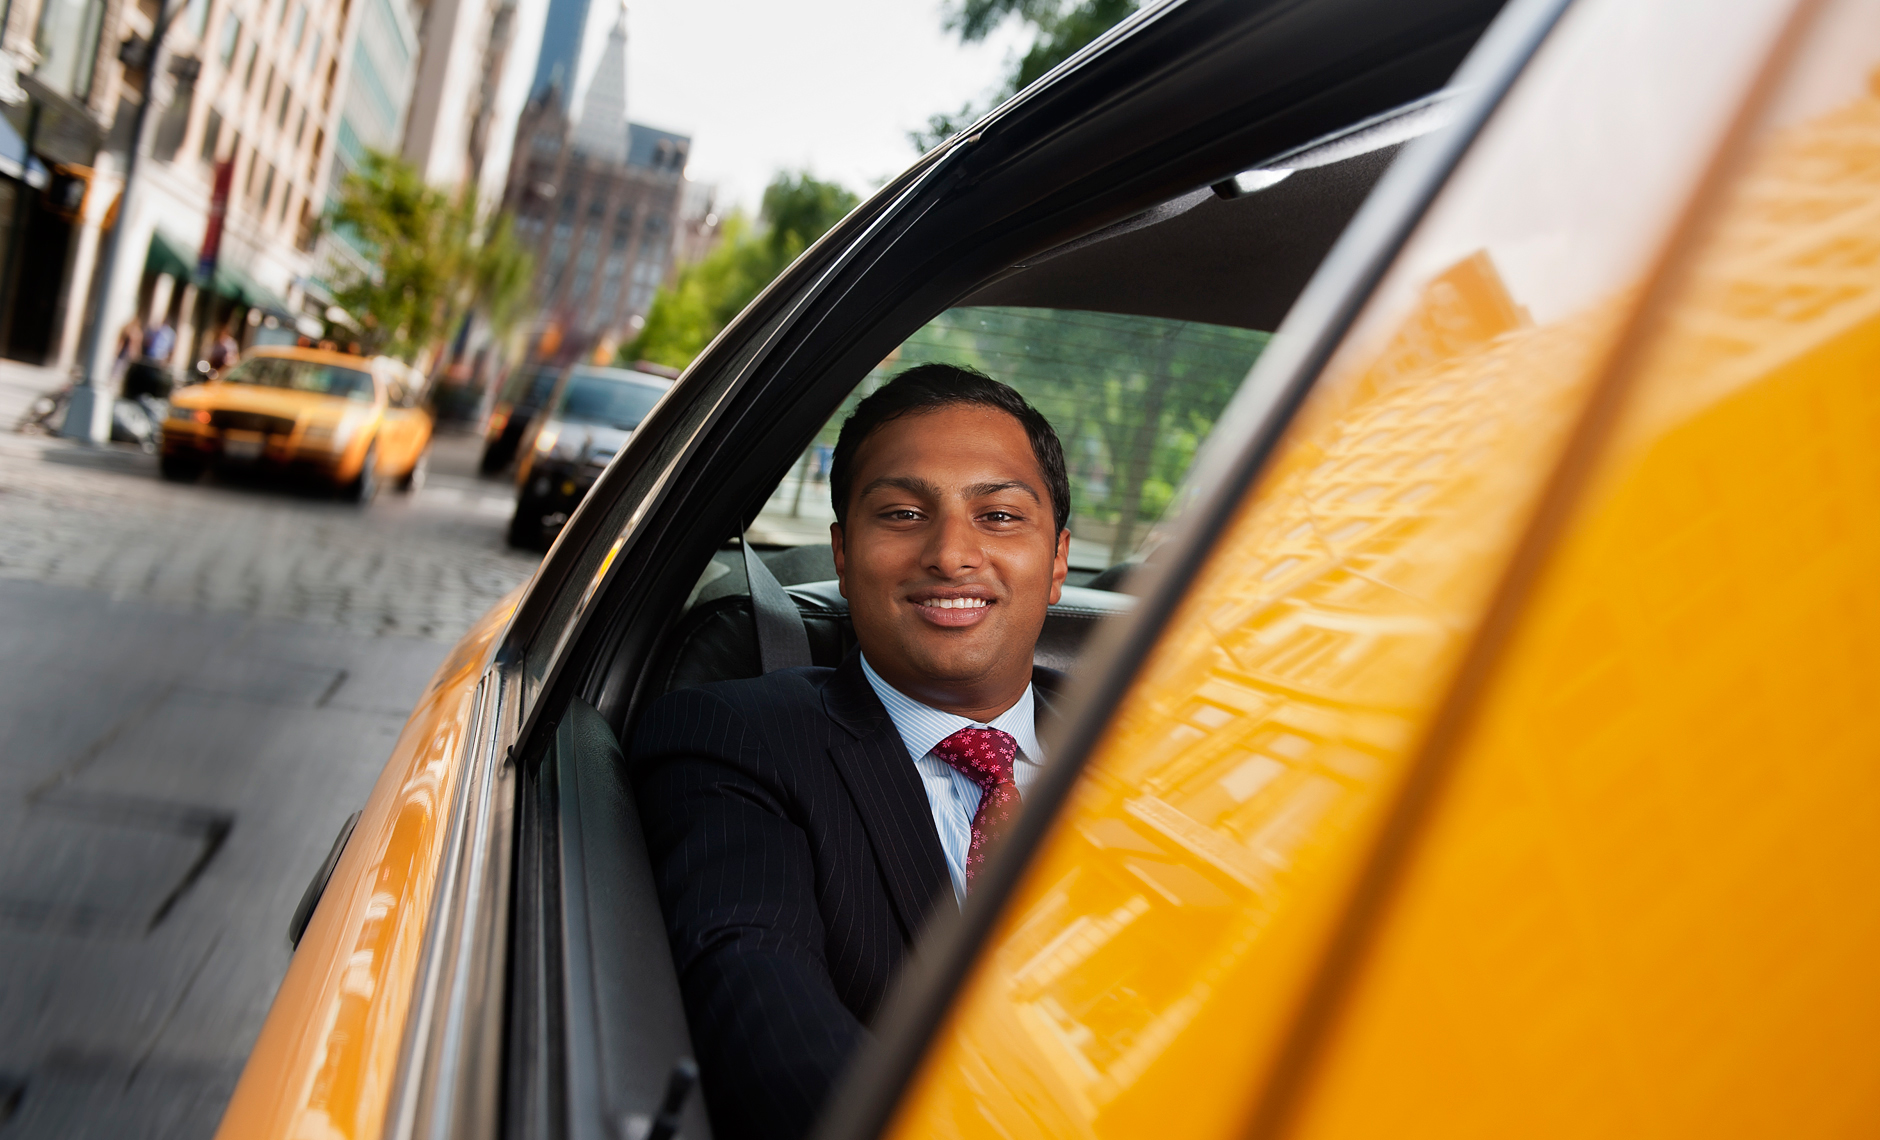 Chirag Shah in New York City Taxi cab